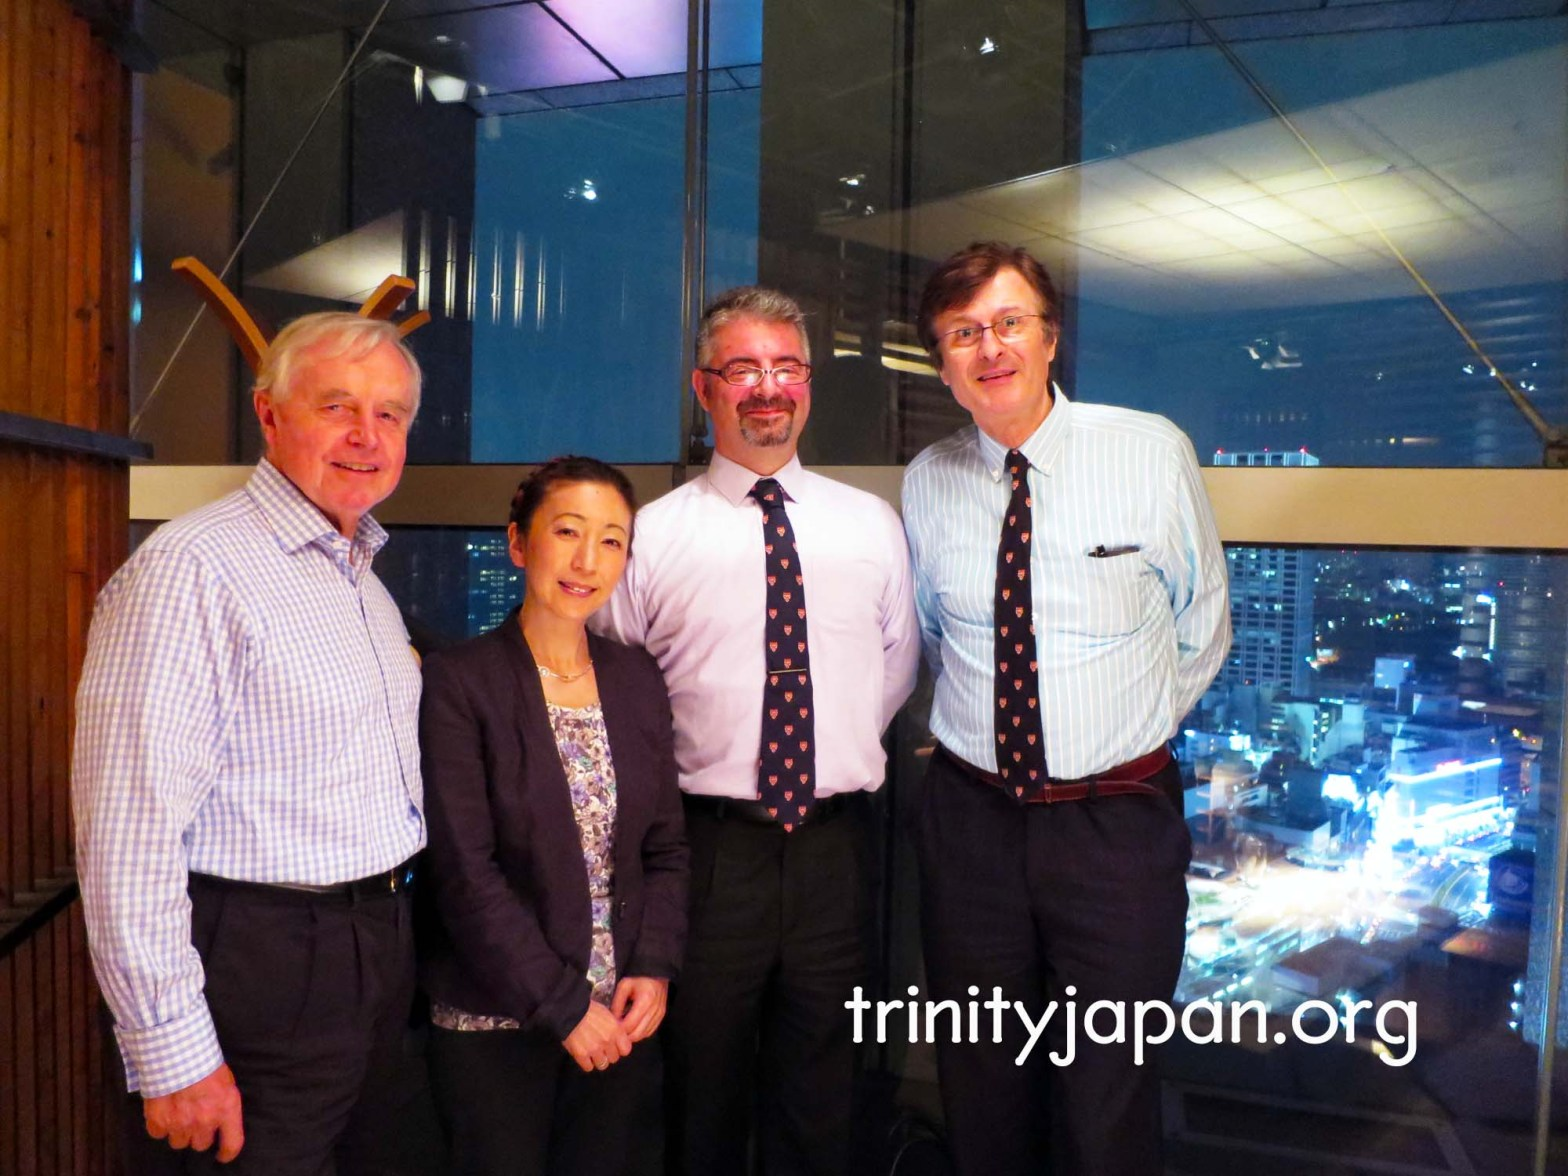 3rd Trinity in Japan Society meeting on Thursday, 24 September 2015